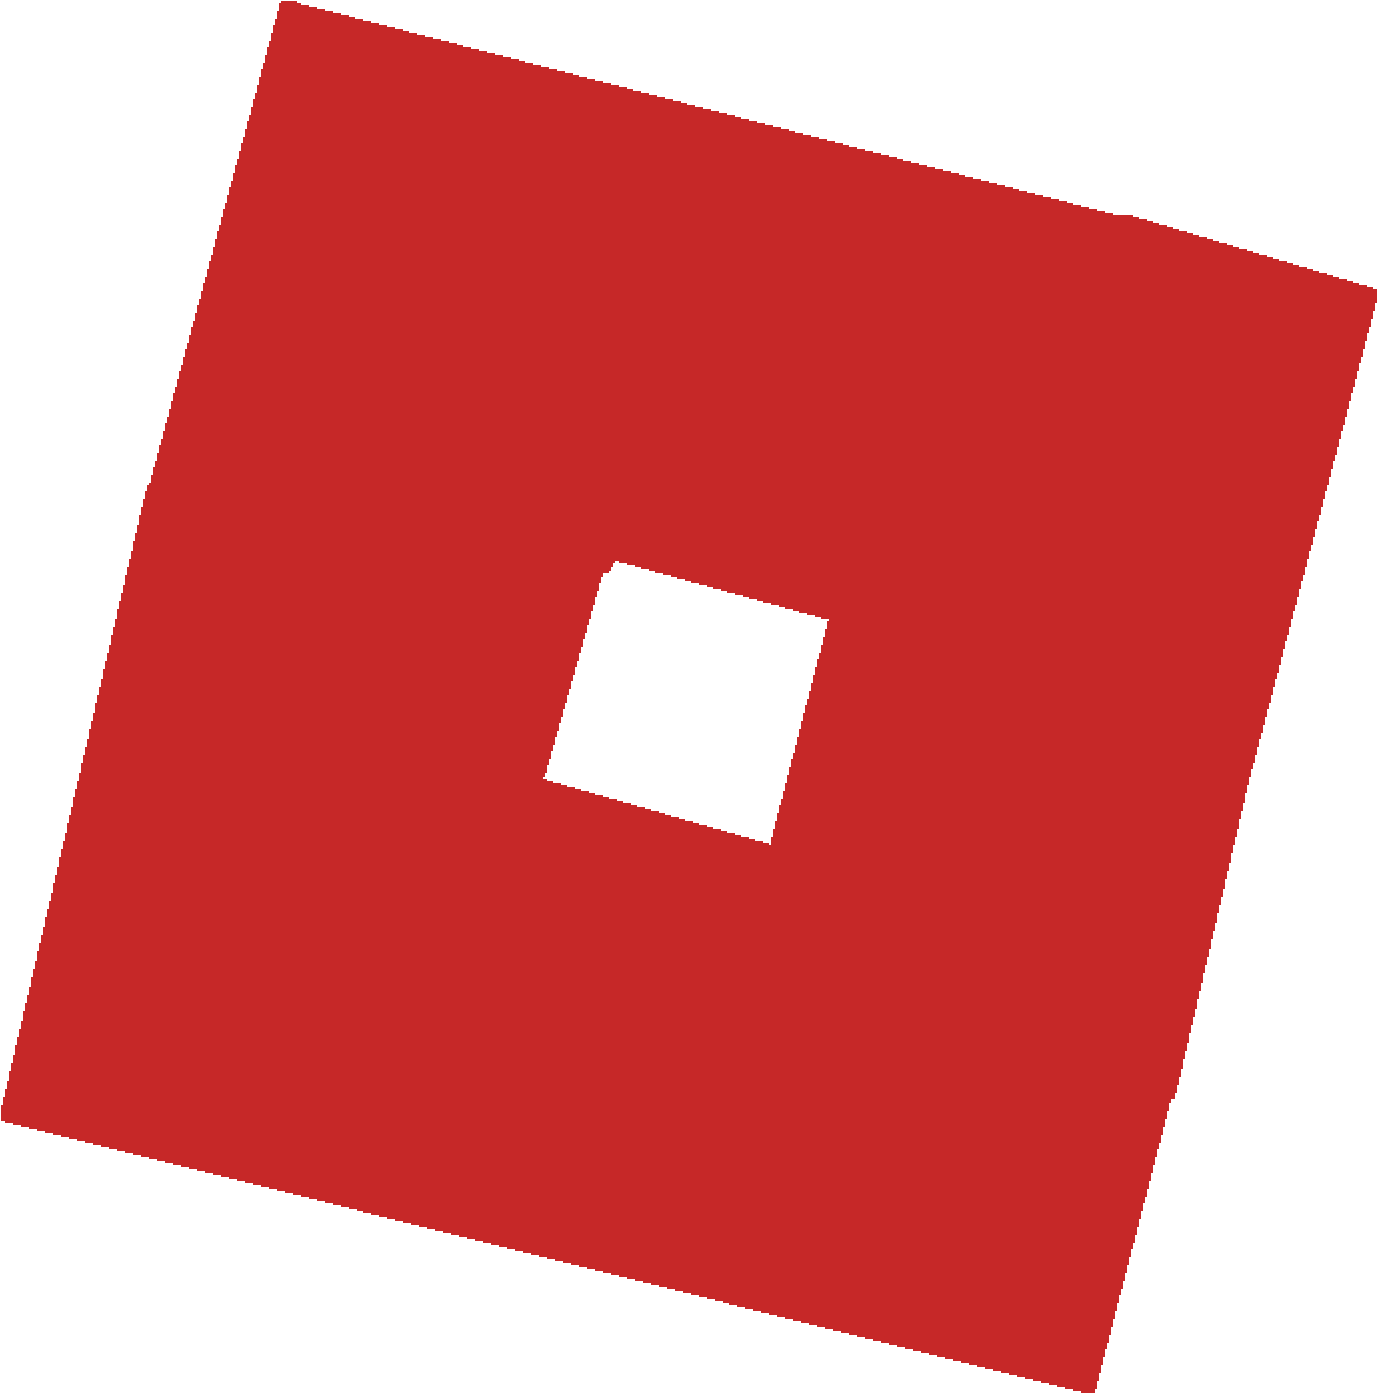 Download Roblox Icon Roblox Cheez It Logo Png Image With - how to get the cheez it logo cool backgrounds for roblox